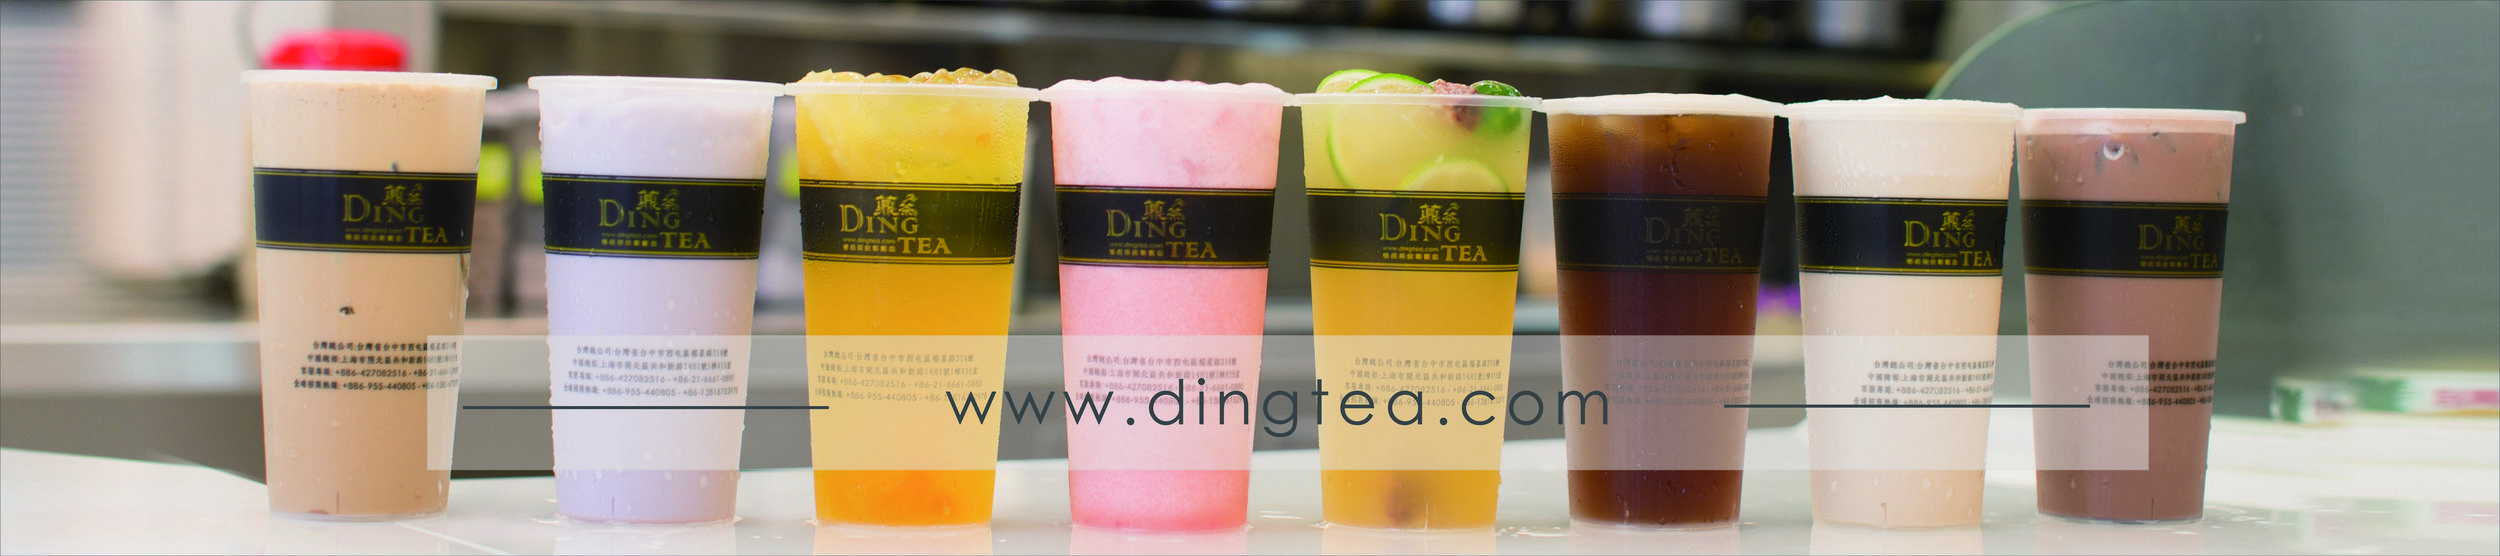 Locations — Ding Tea USA